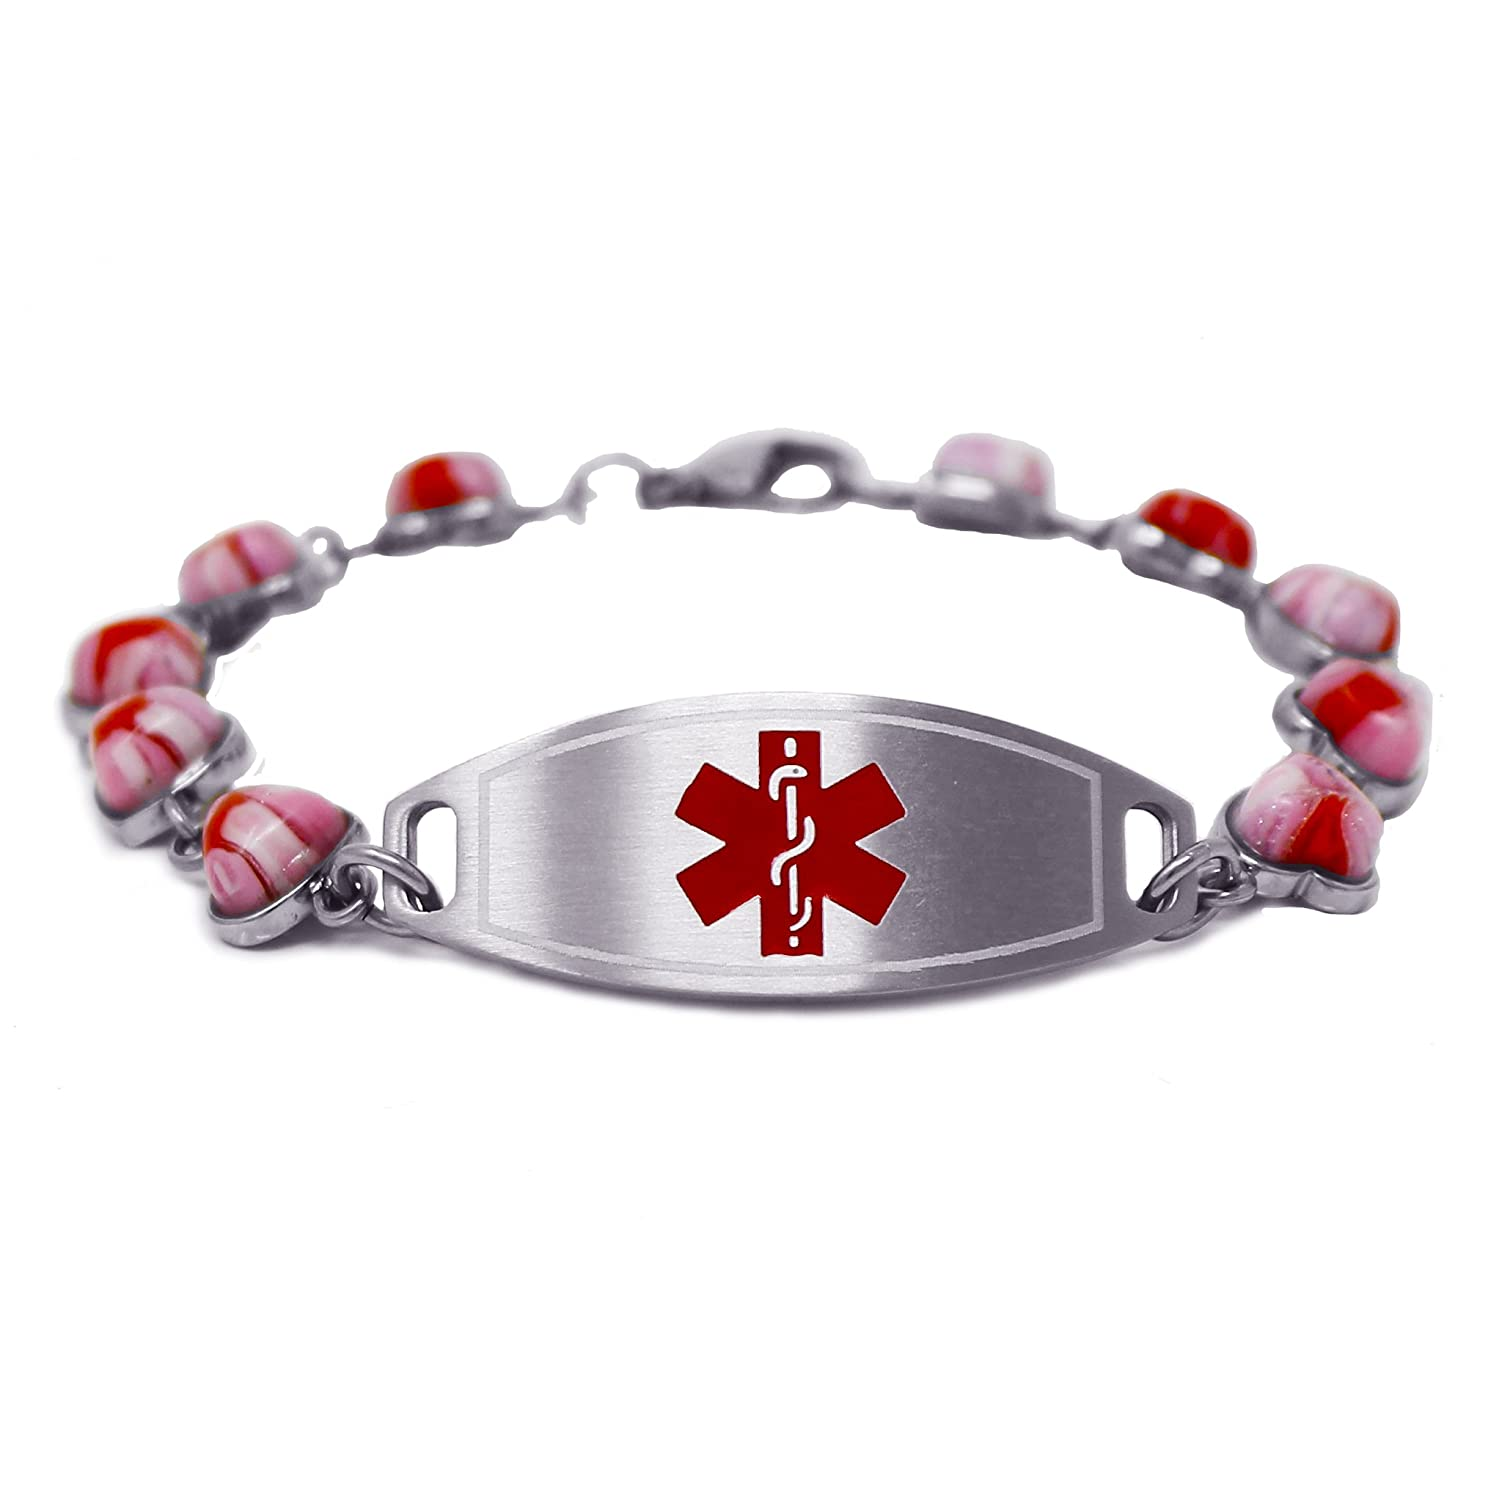 My Identity Doctor – Womens Medical ID Bracelet with Engraving – 1.2cm Steel Glass Hearts – Made in USA